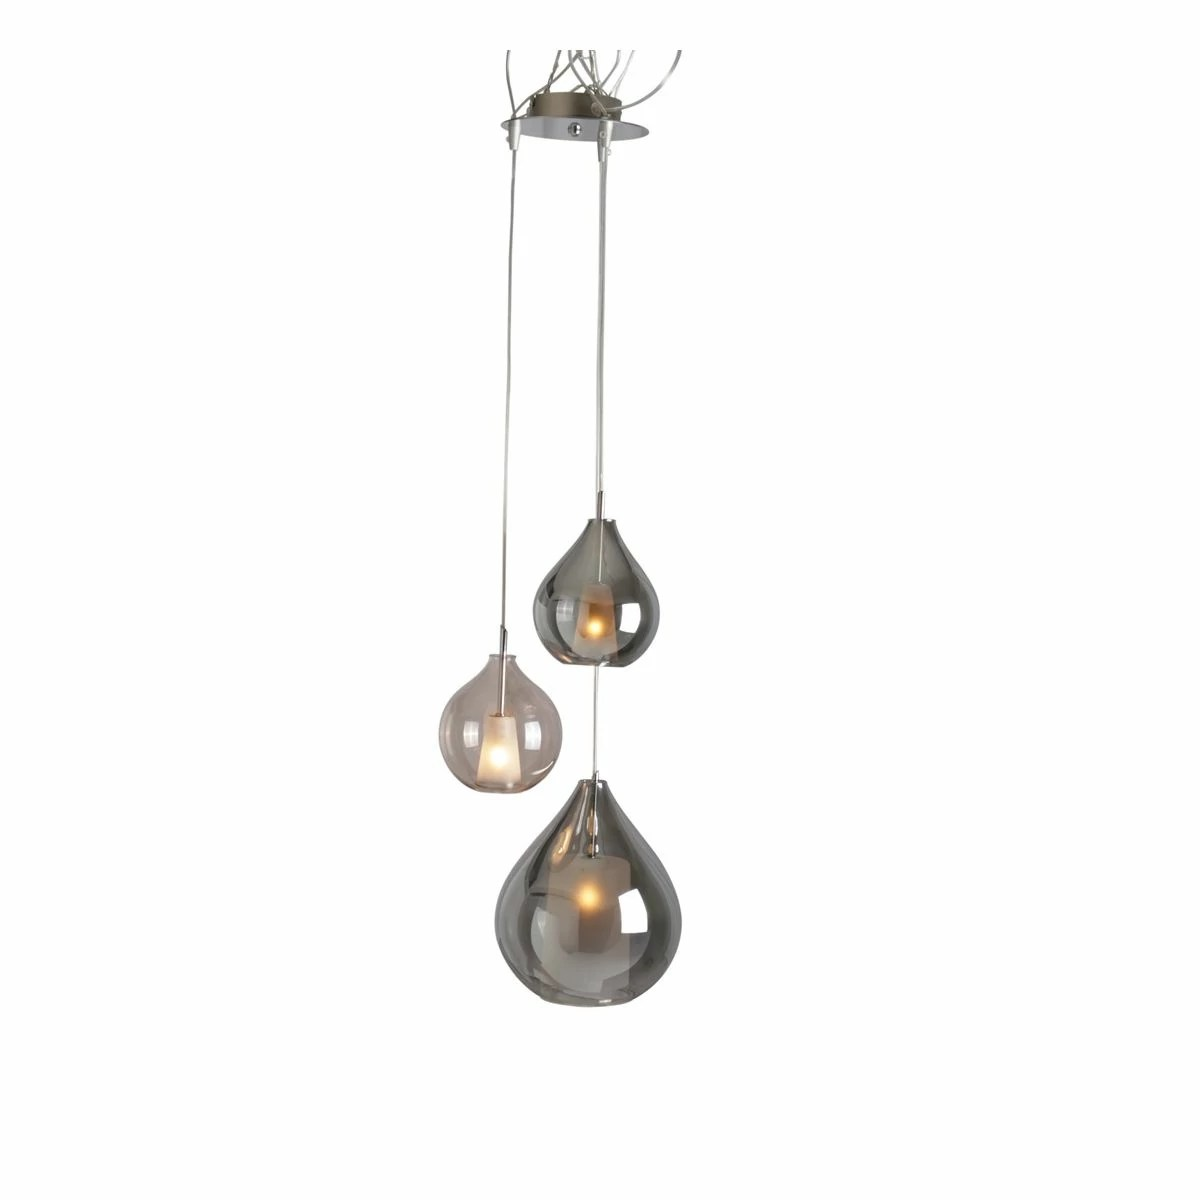 Luminaire Suspension Luminaire Suspension Circé 3 Concept Verre